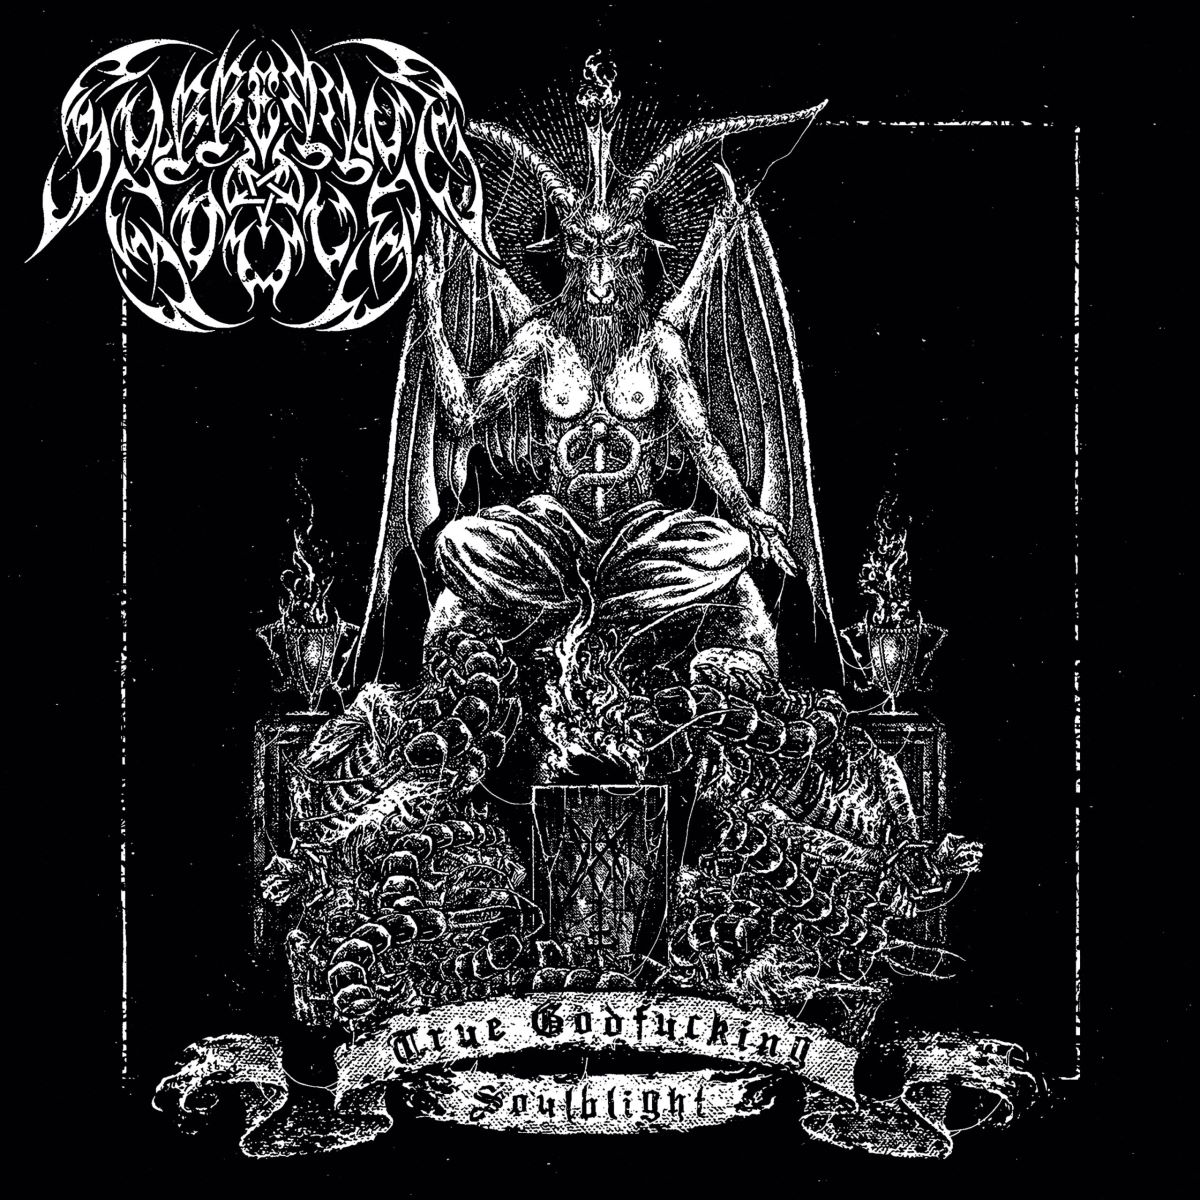 Suffering Souls - The Godfucking Soulblight - album cover